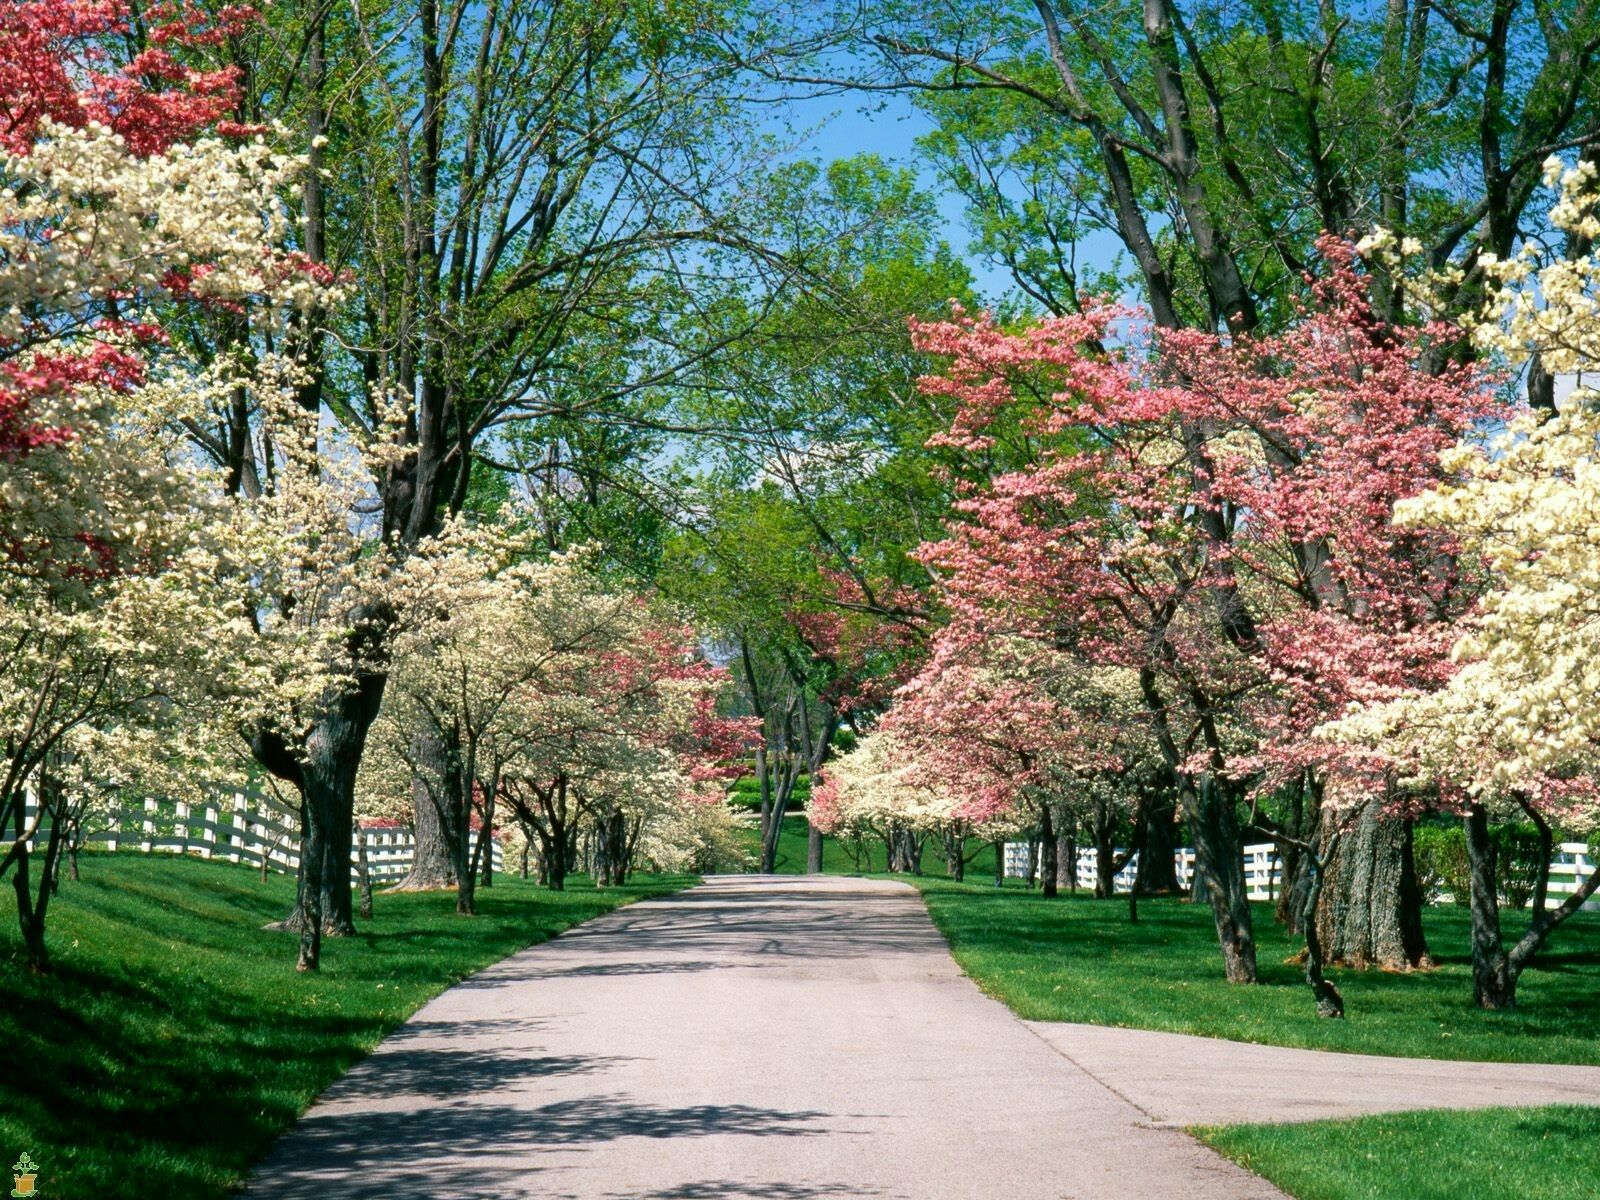 My ideal drive way; very beautiful and lined with dogwoods